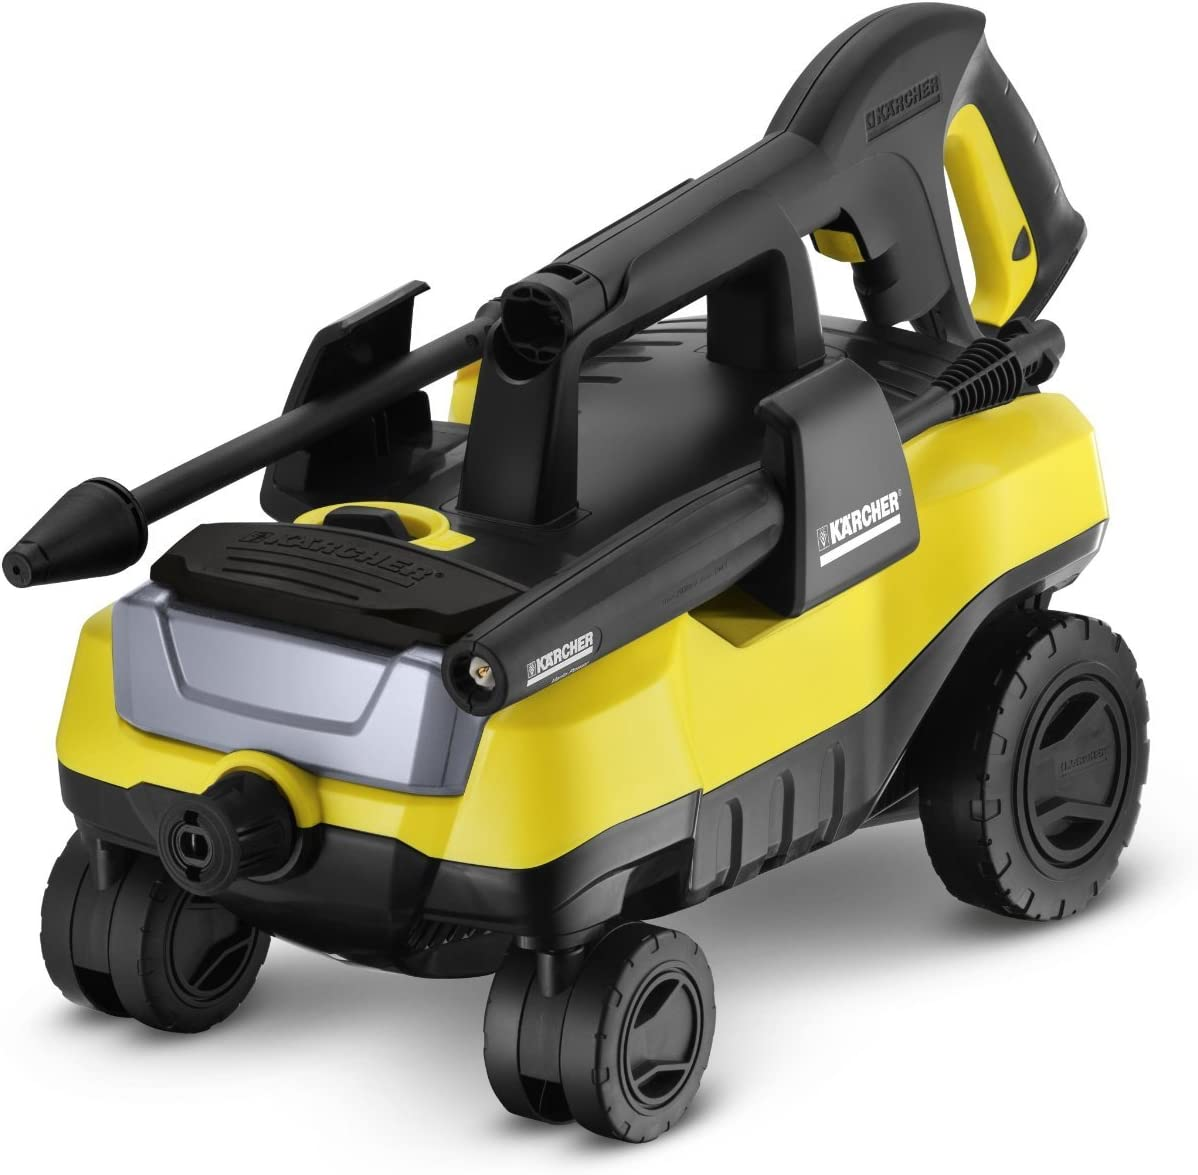 Top 5 Best Pressure Washer For Cars [August 2021] 5